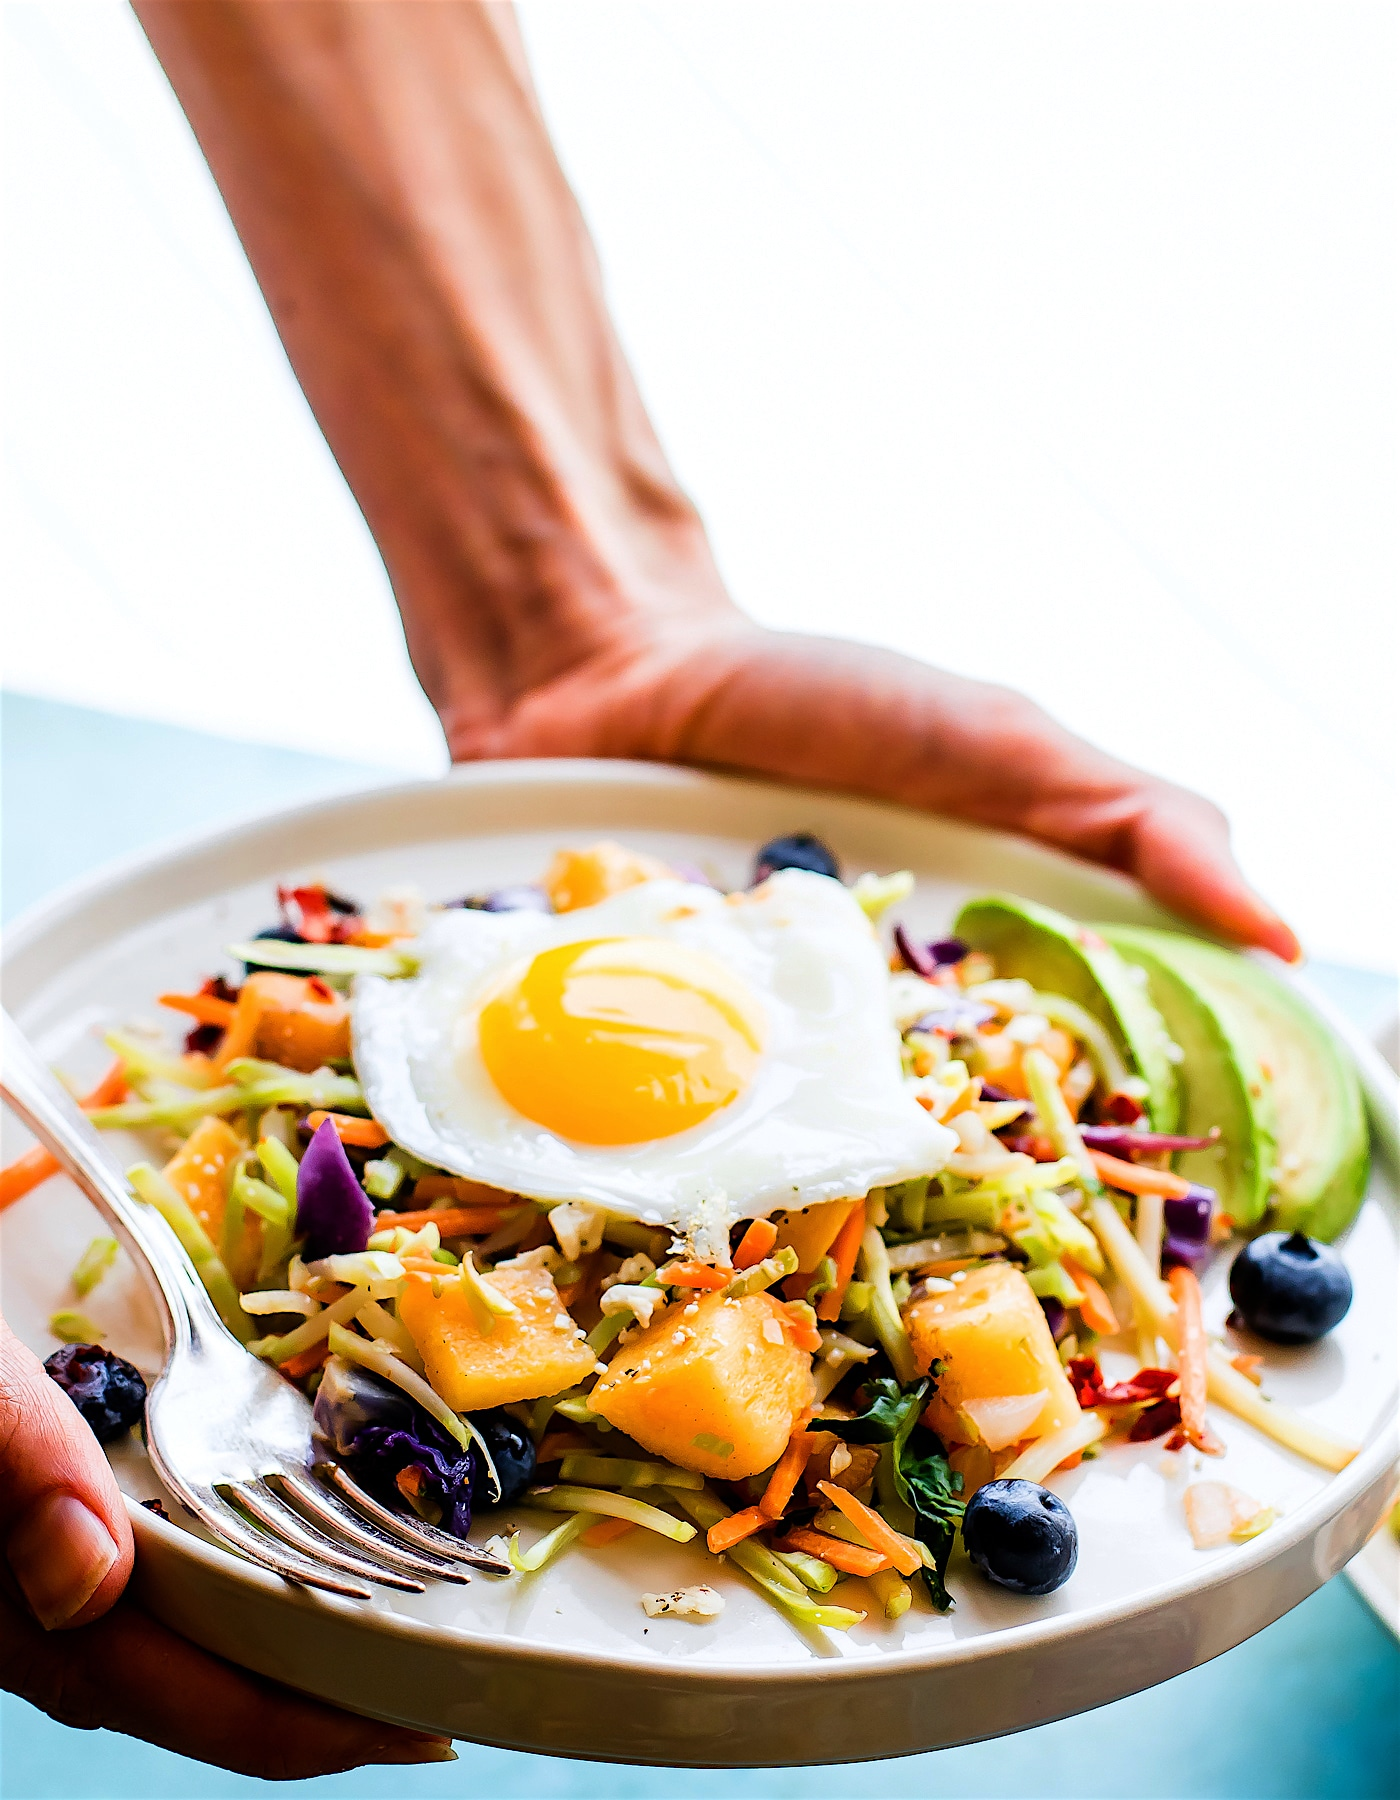 Breakfast salad to start the day! A nourishing warm Paleo meal with broccoli slaw, squash, berries, and fried eggs. A breakfast salad worth waking up for! #whole30